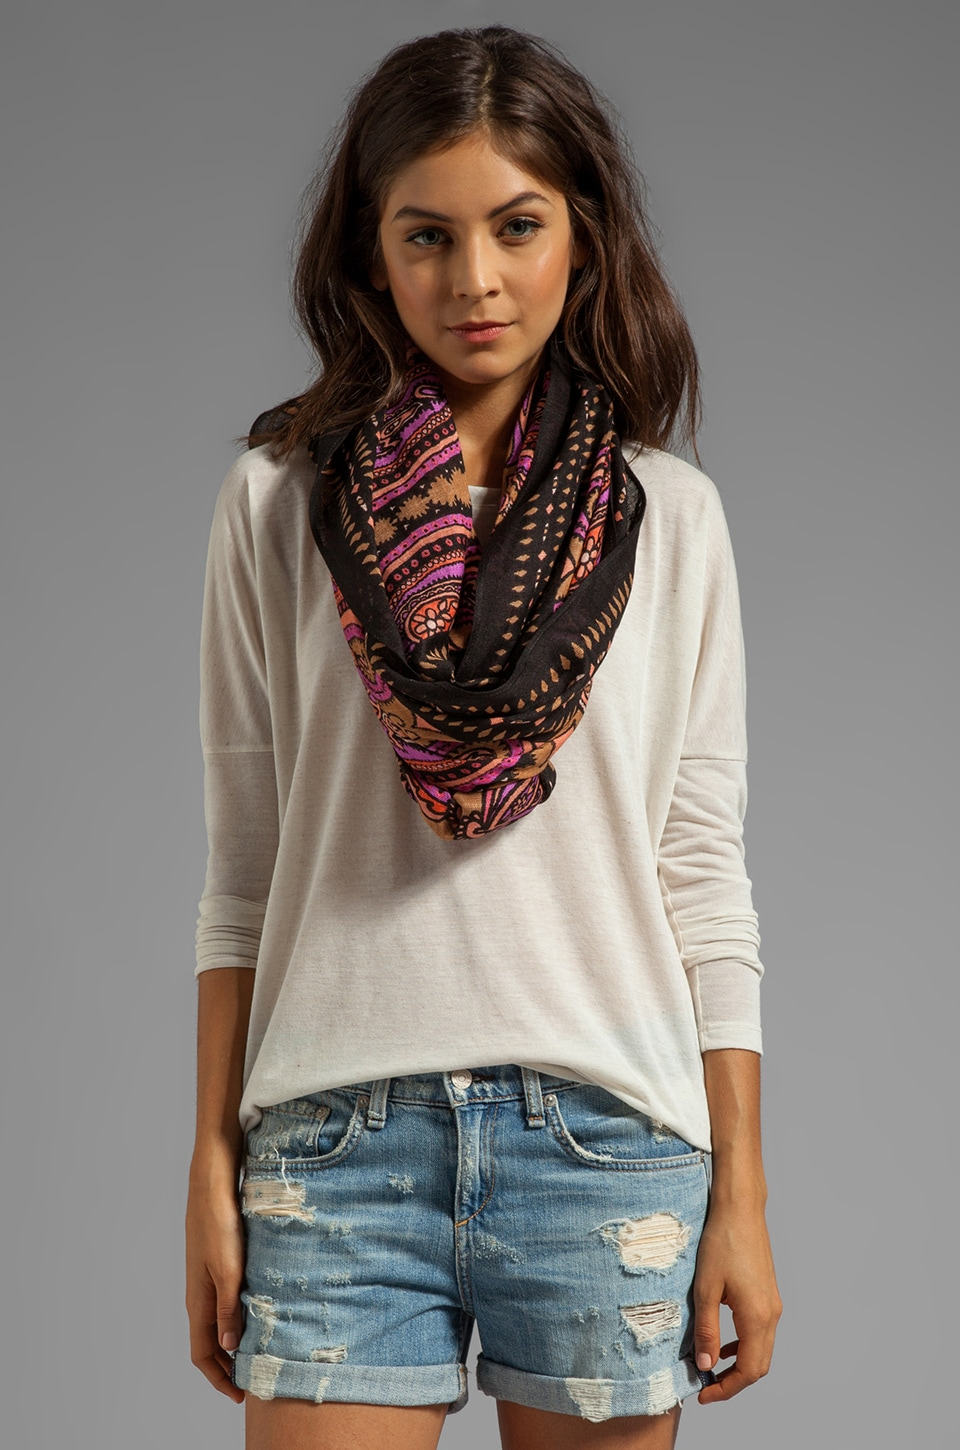 Theodora & Callum Budapest Tie All Scarf in Black Multi